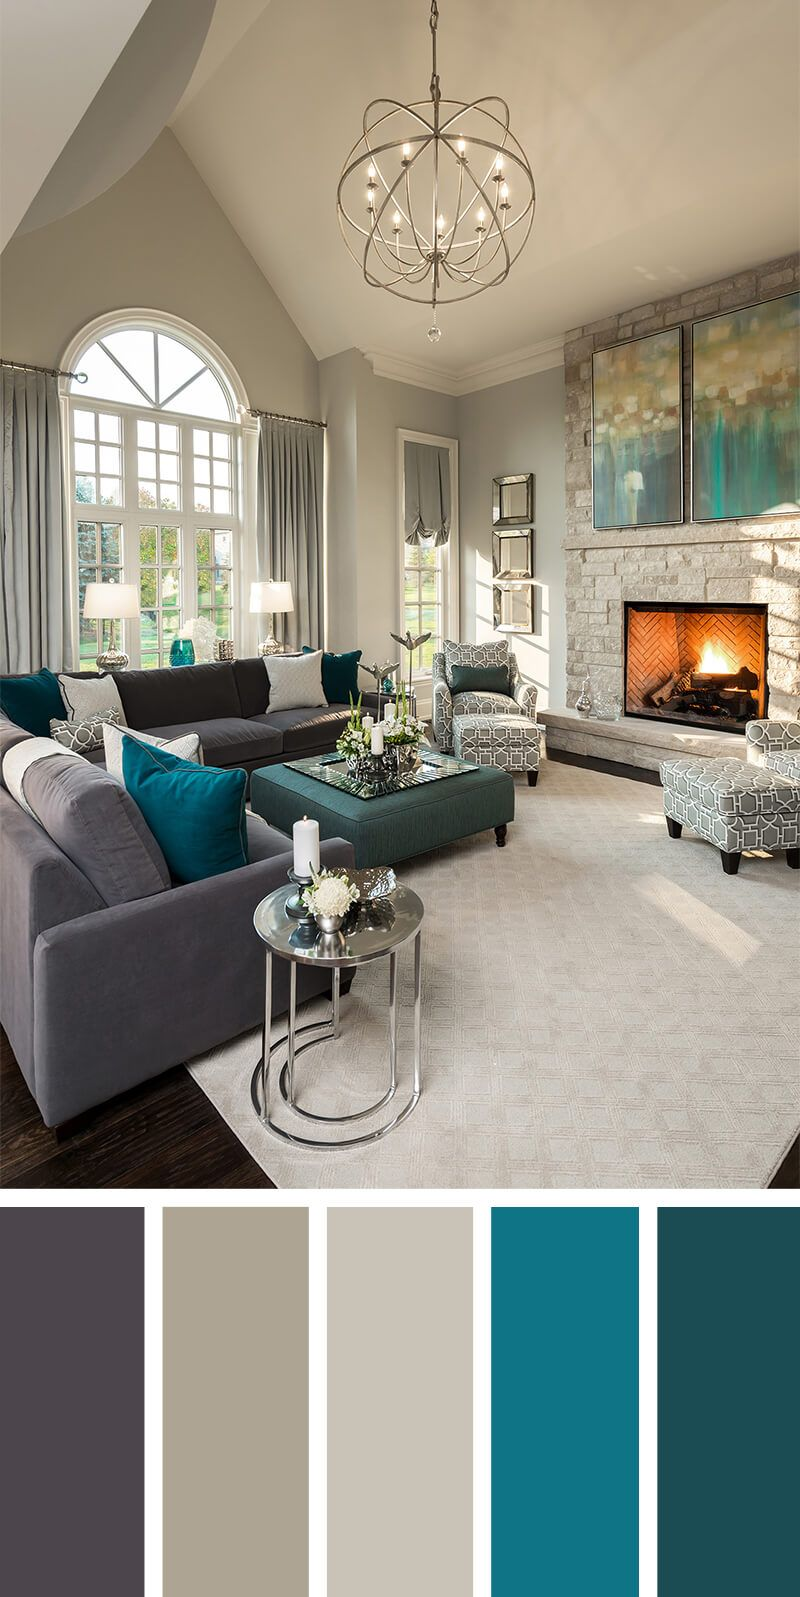 Living Room Colors Build In Shelves Neutral Isn T Boring Architecture Interior Designs Pinterest Teal Color Scheme For